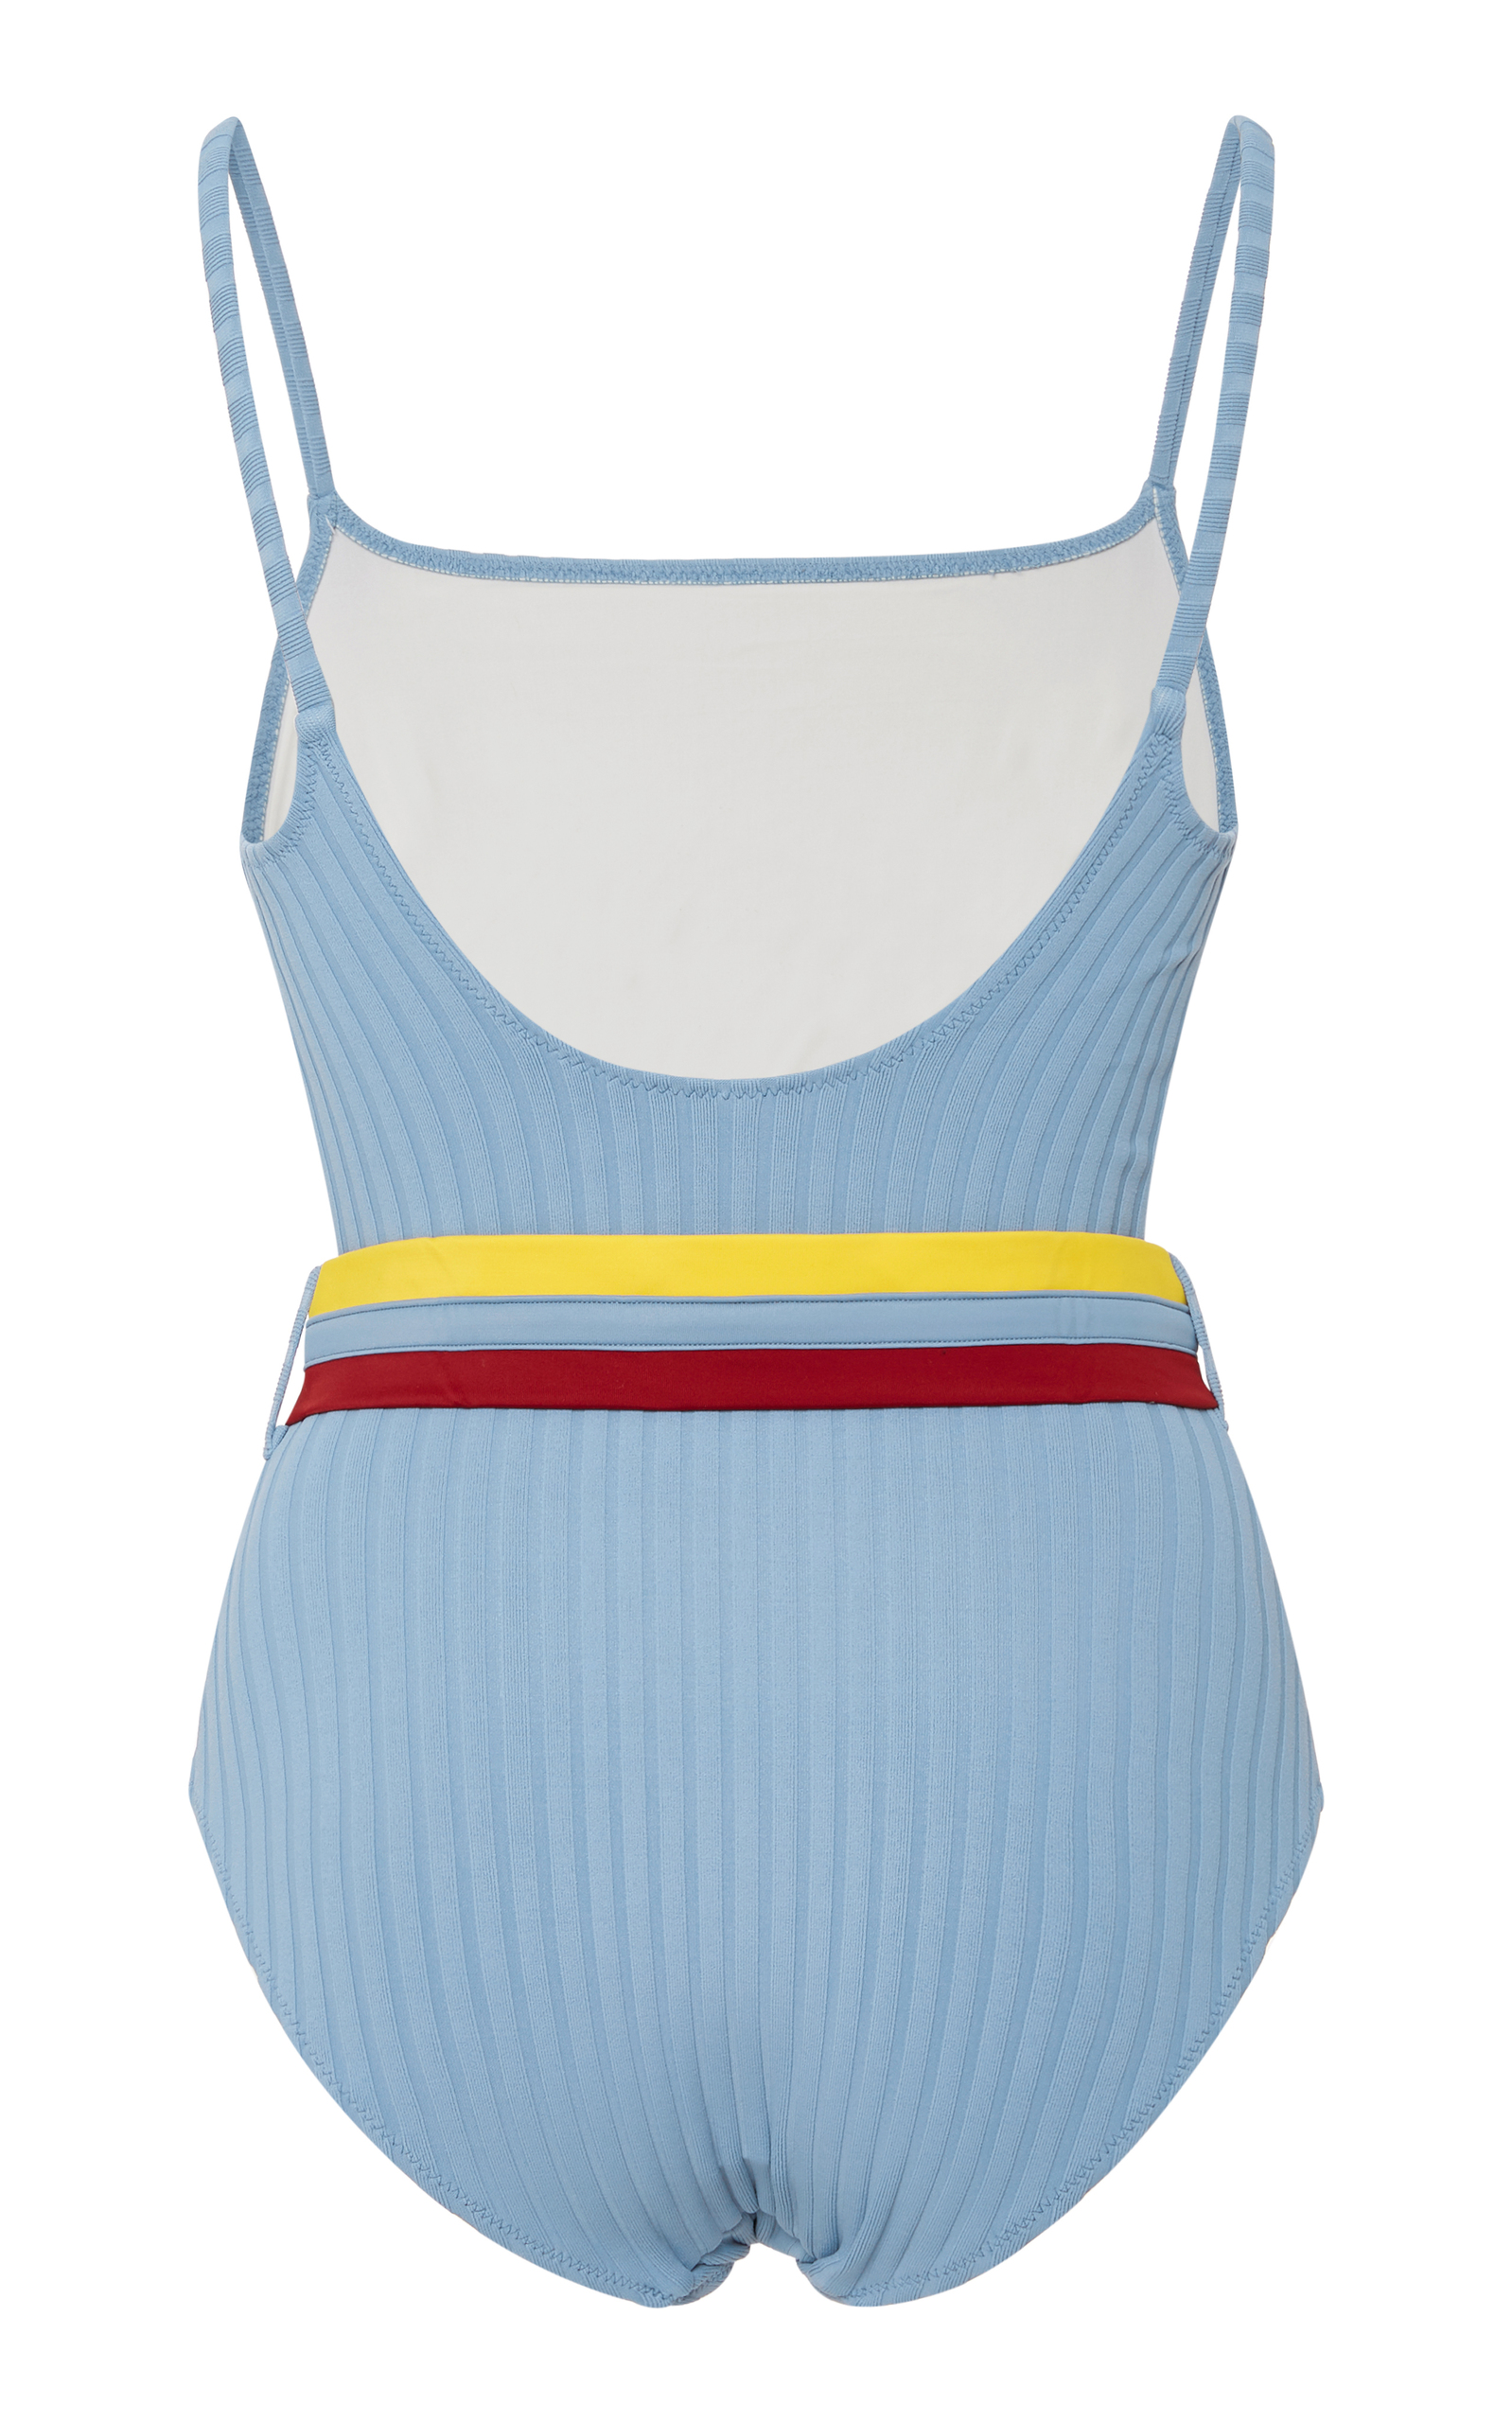 0cae7bc2e9 Solid   StripedBelted Ribbed One Piece Swimsuit. CLOSE. Loading. Loading.  Loading